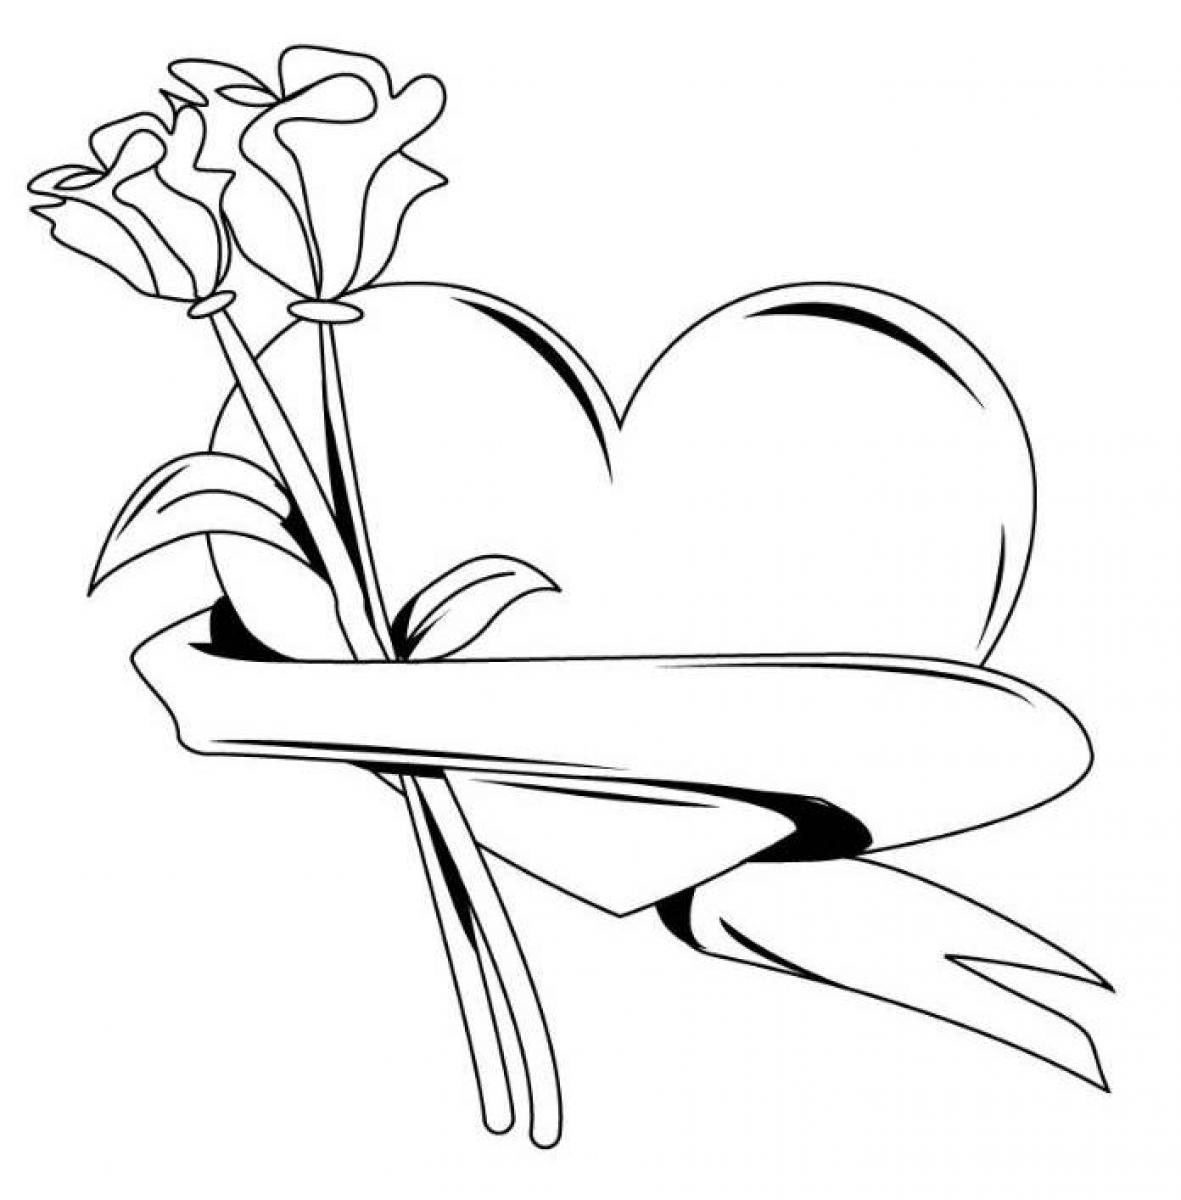 - Roses Drawings With Hearts Free Download On ClipArtMag